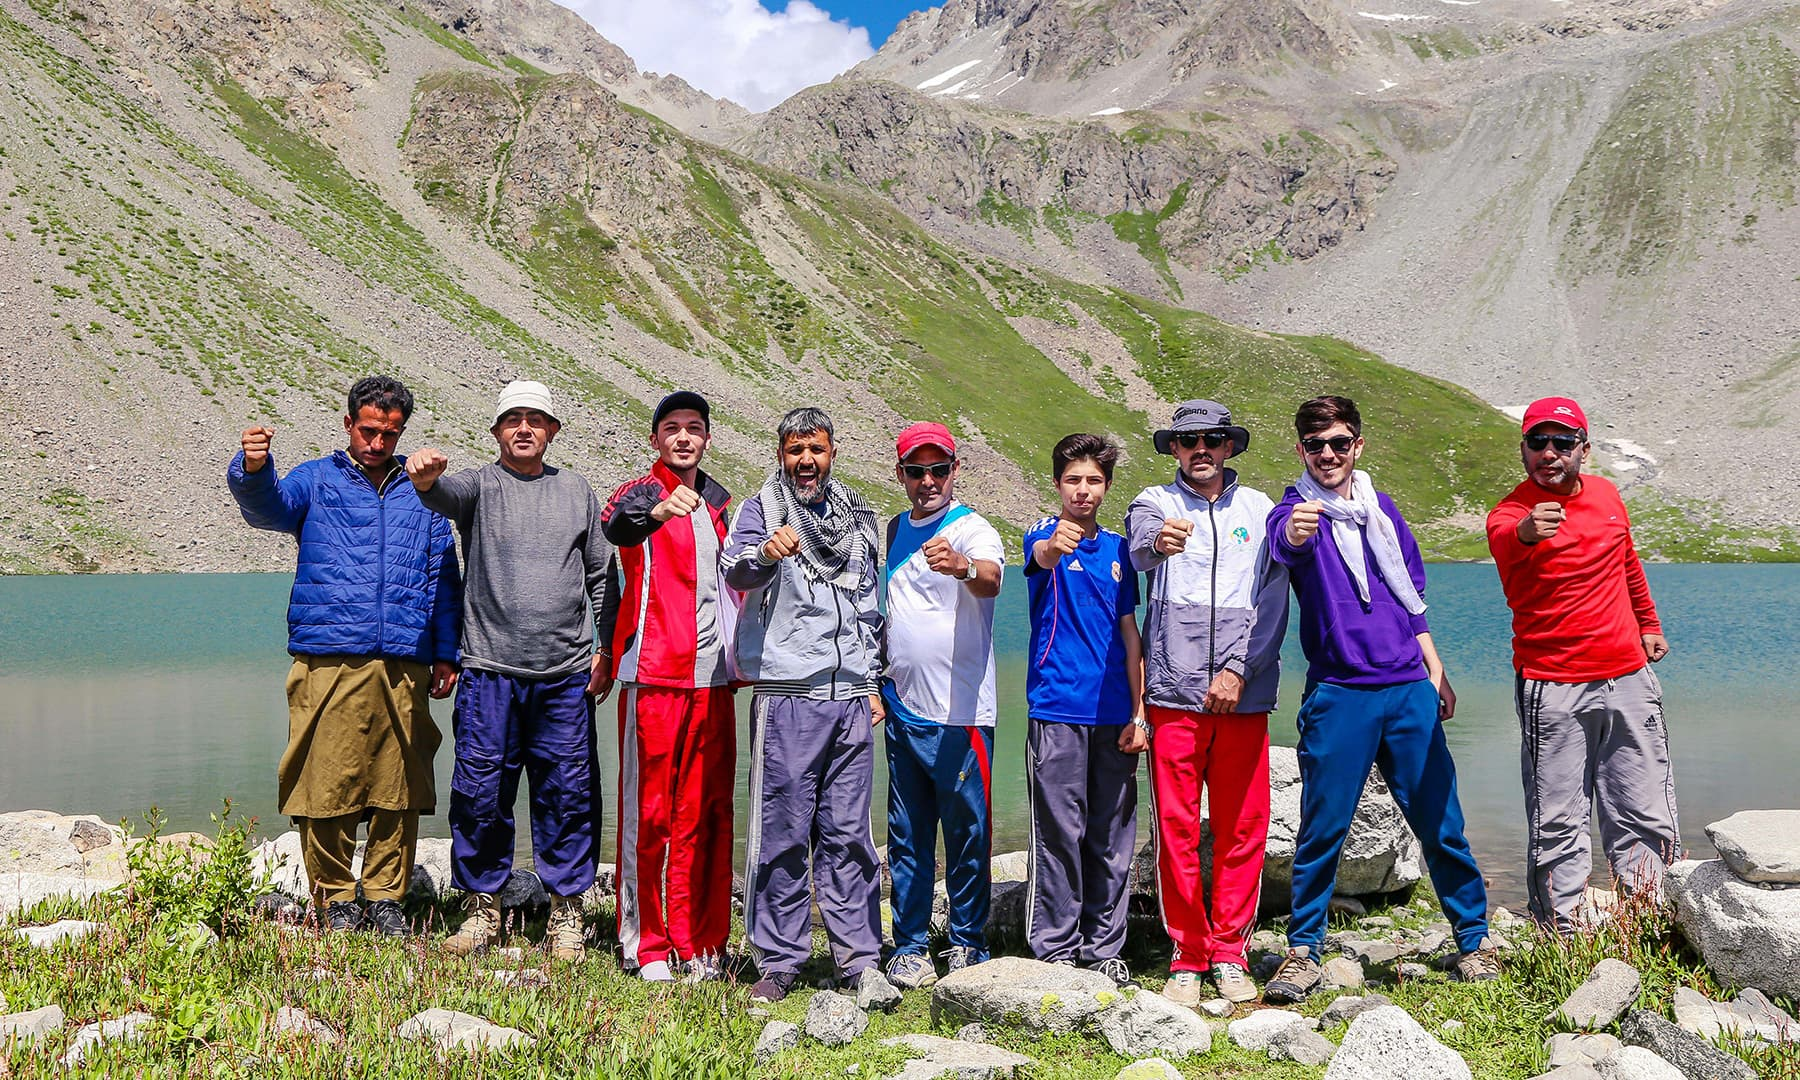 Jubilant trekkers pose for a photo after reaching Mastij Lake.